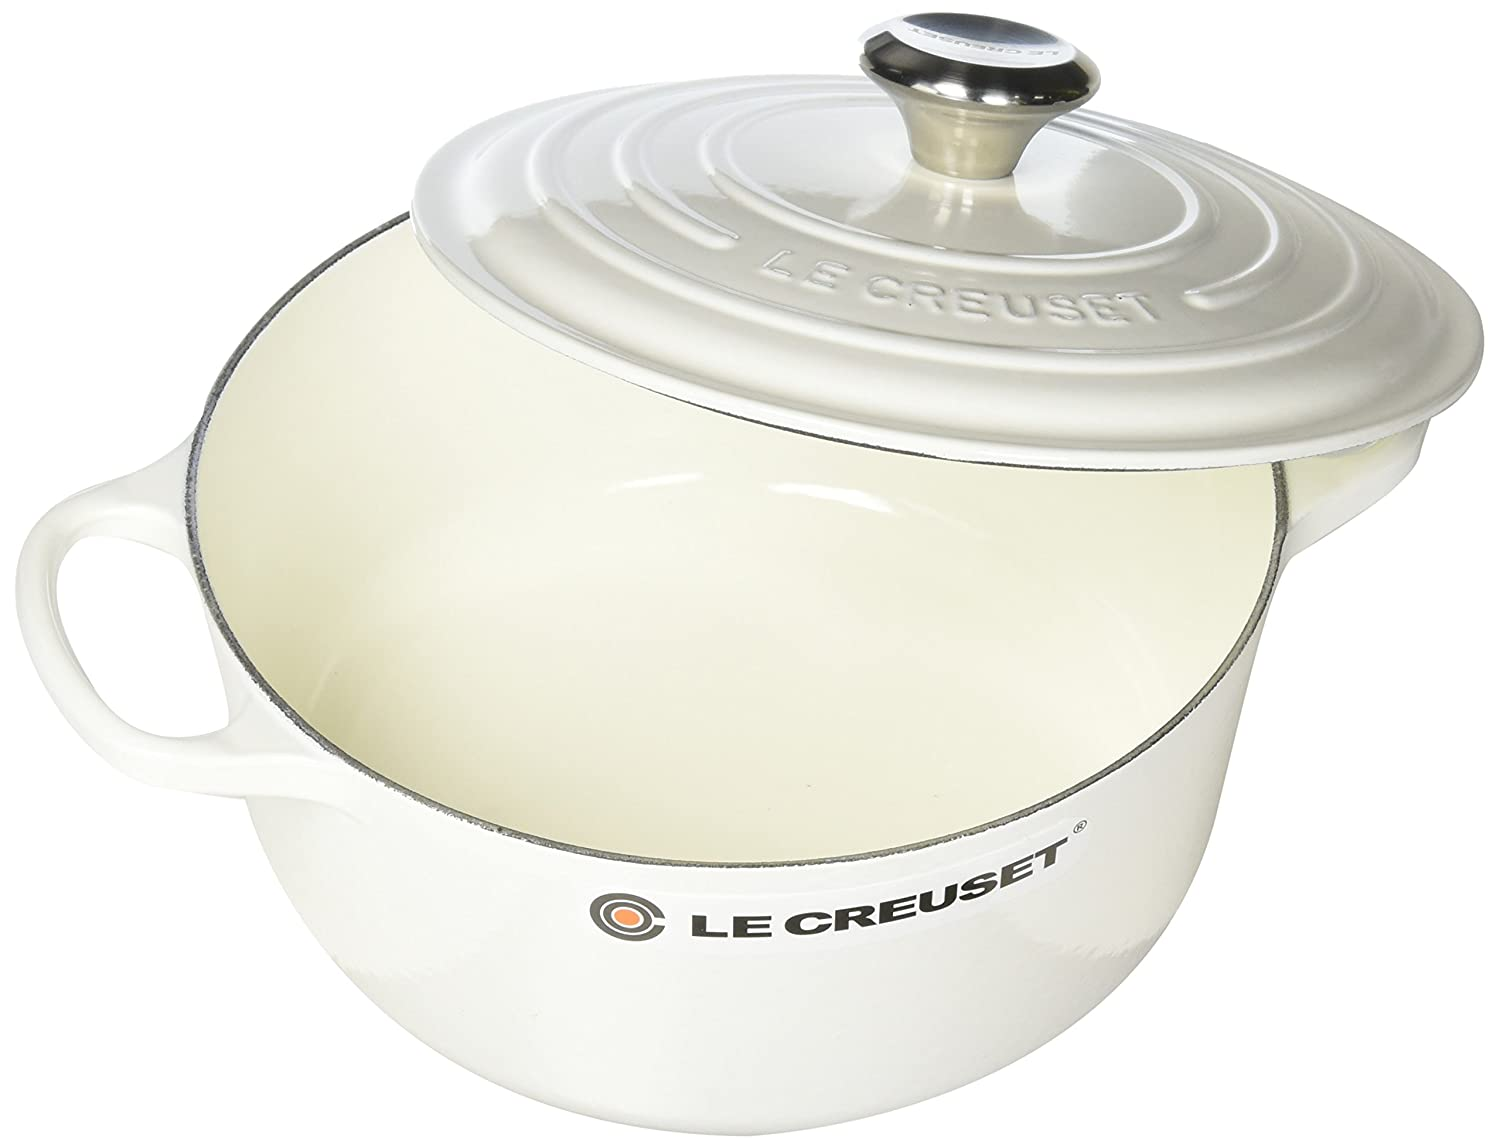 Le Creuset LS2501-2416SS Enameled Cast Iron 4.5 quart Signature Round Dutch Oven White